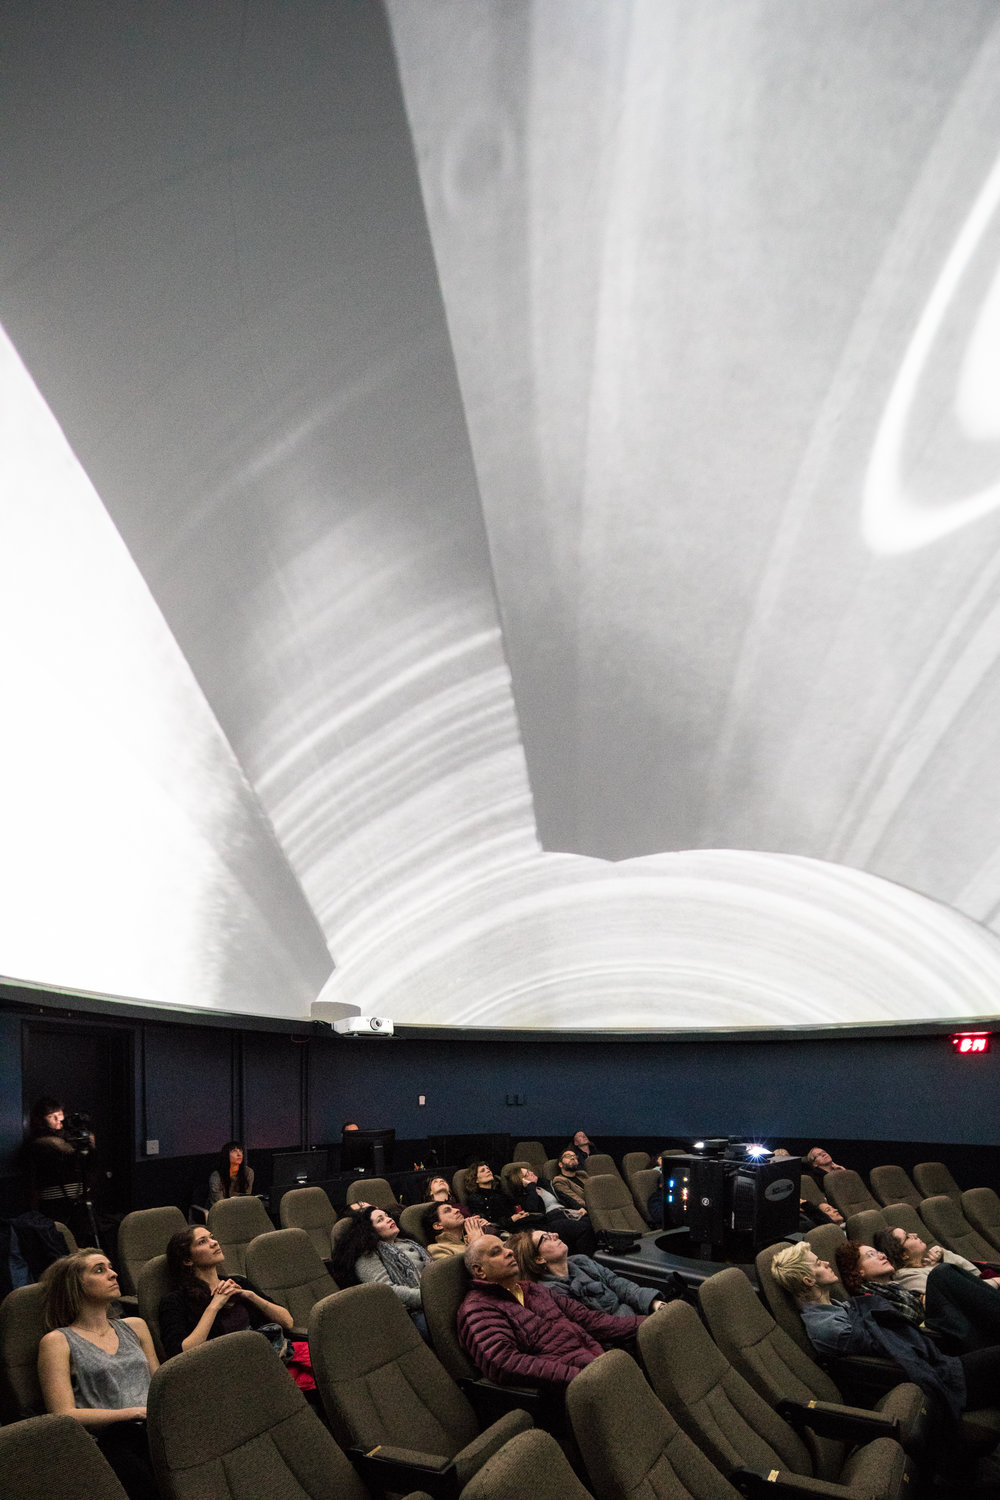 ym_aca_full_dome_projection_111717-6177.jpg